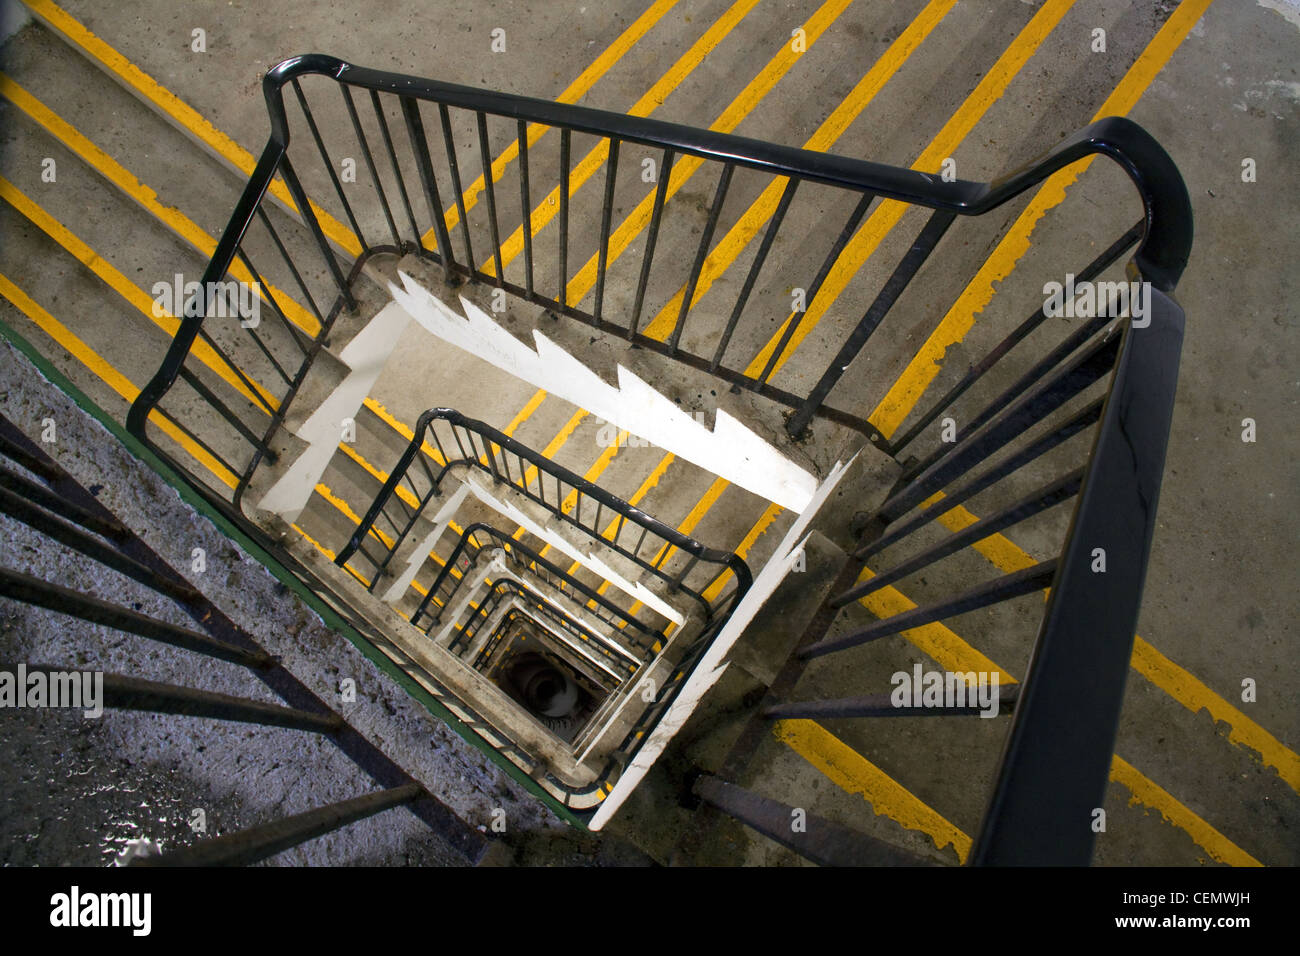 Looking down Car park stairwell, poole harbour, Dorset, England, UK - Stock Image